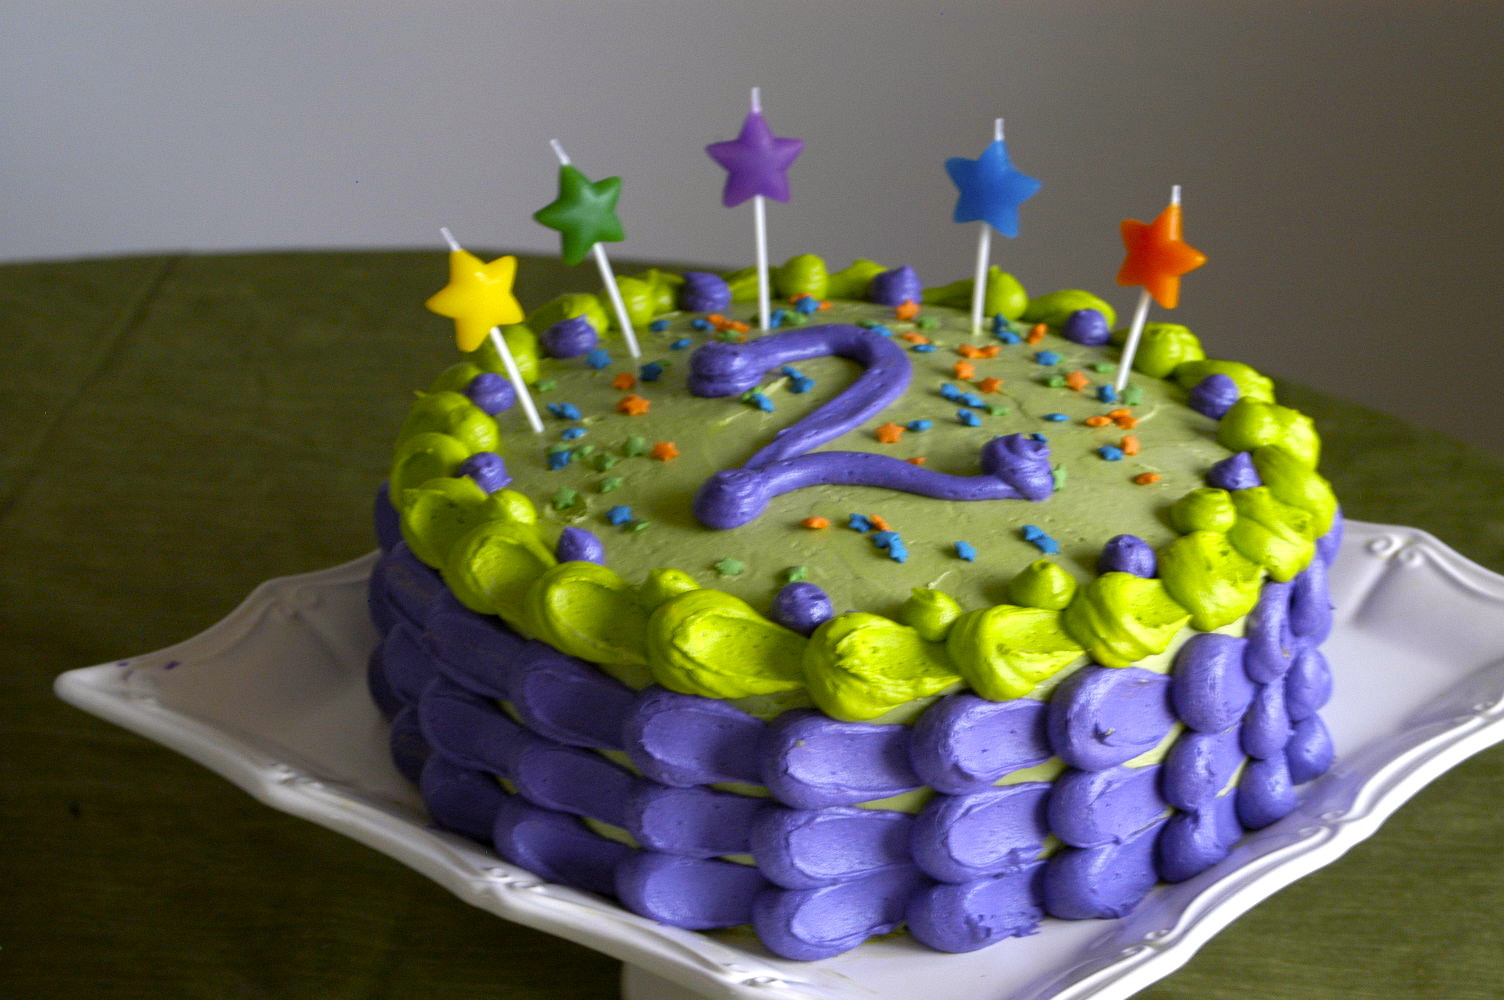 Best ideas about 2nd Birthday Cake . Save or Pin Jack's Funfetti 2nd Birthday Cake – Hickory Creek Lane Now.